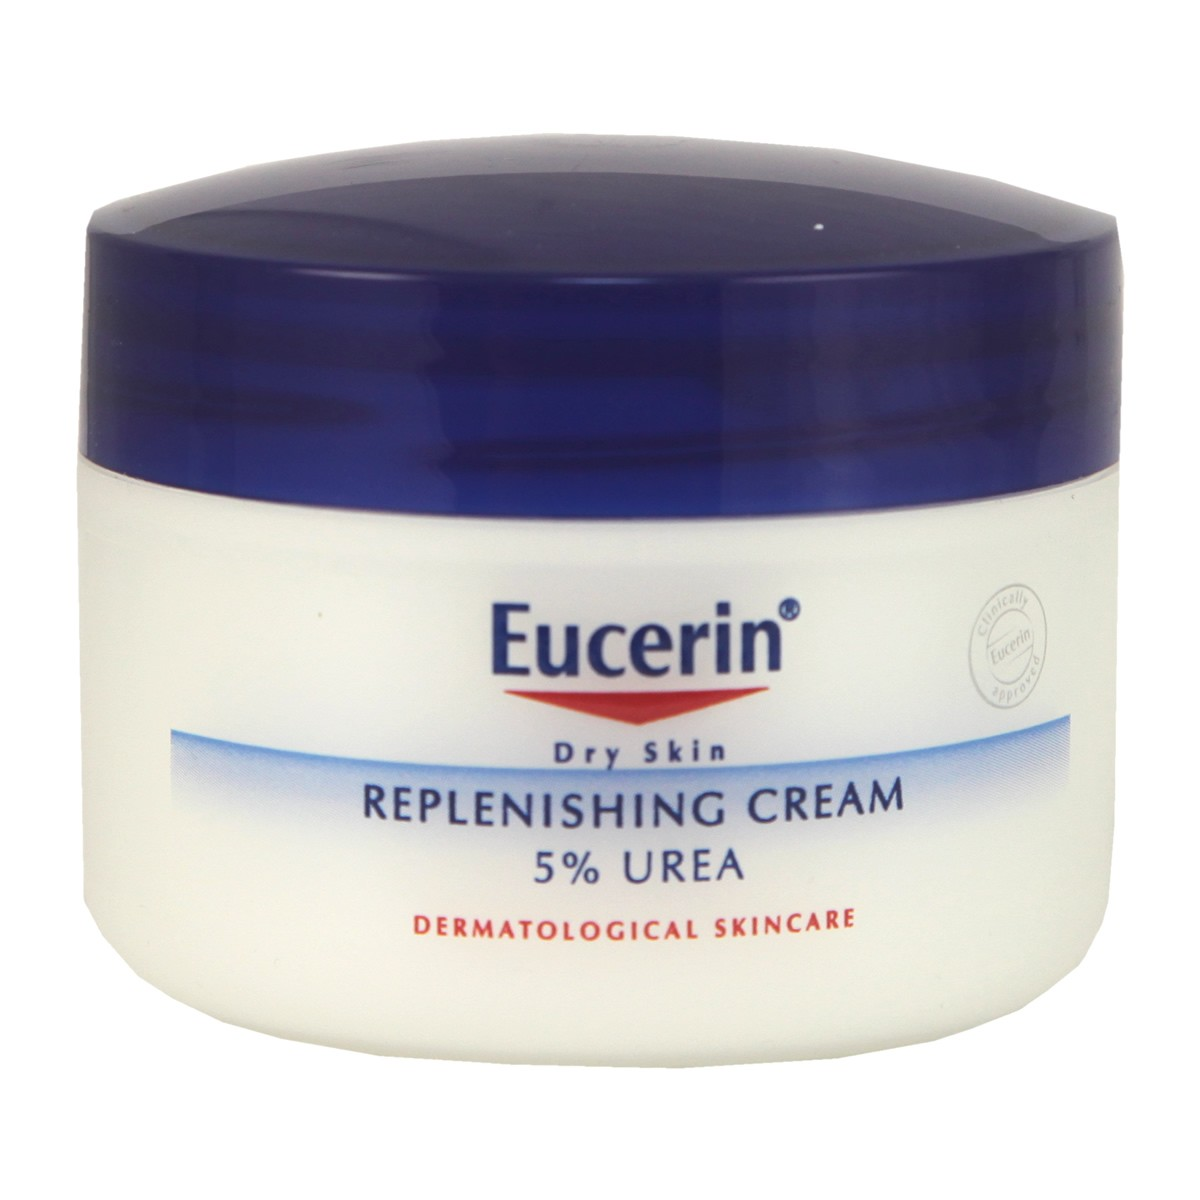 Eucerin Replenishing Cream 5% Urea with Lactate & Carnitine